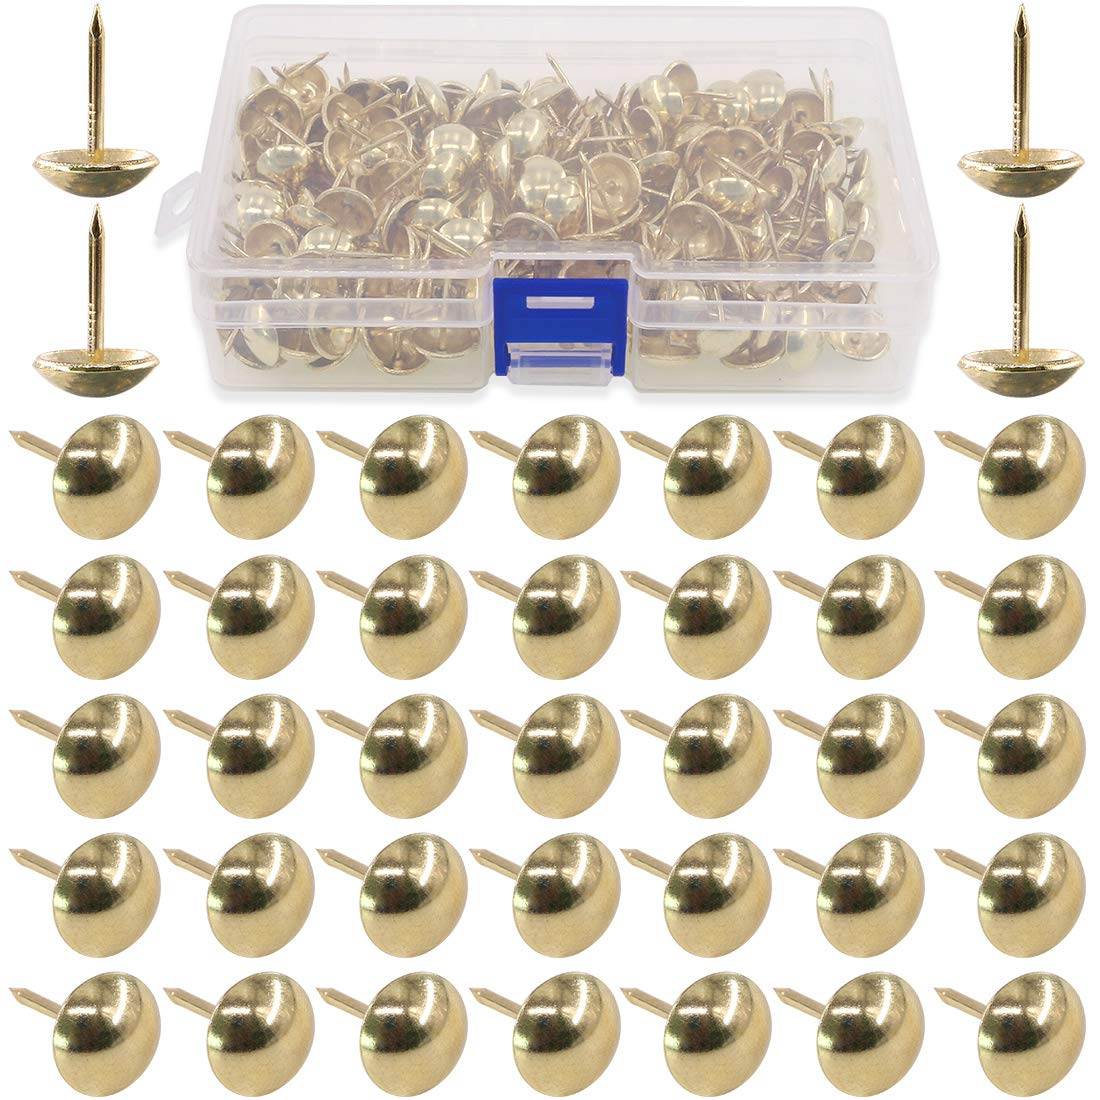 Hilitchi 200-Pieces 9/16'' (14mm) Antique Upholstery Nails Tacks Furniture Tacks Upholstery Tacks Thumb Tack Push Pins Assortment Kit (Gold)